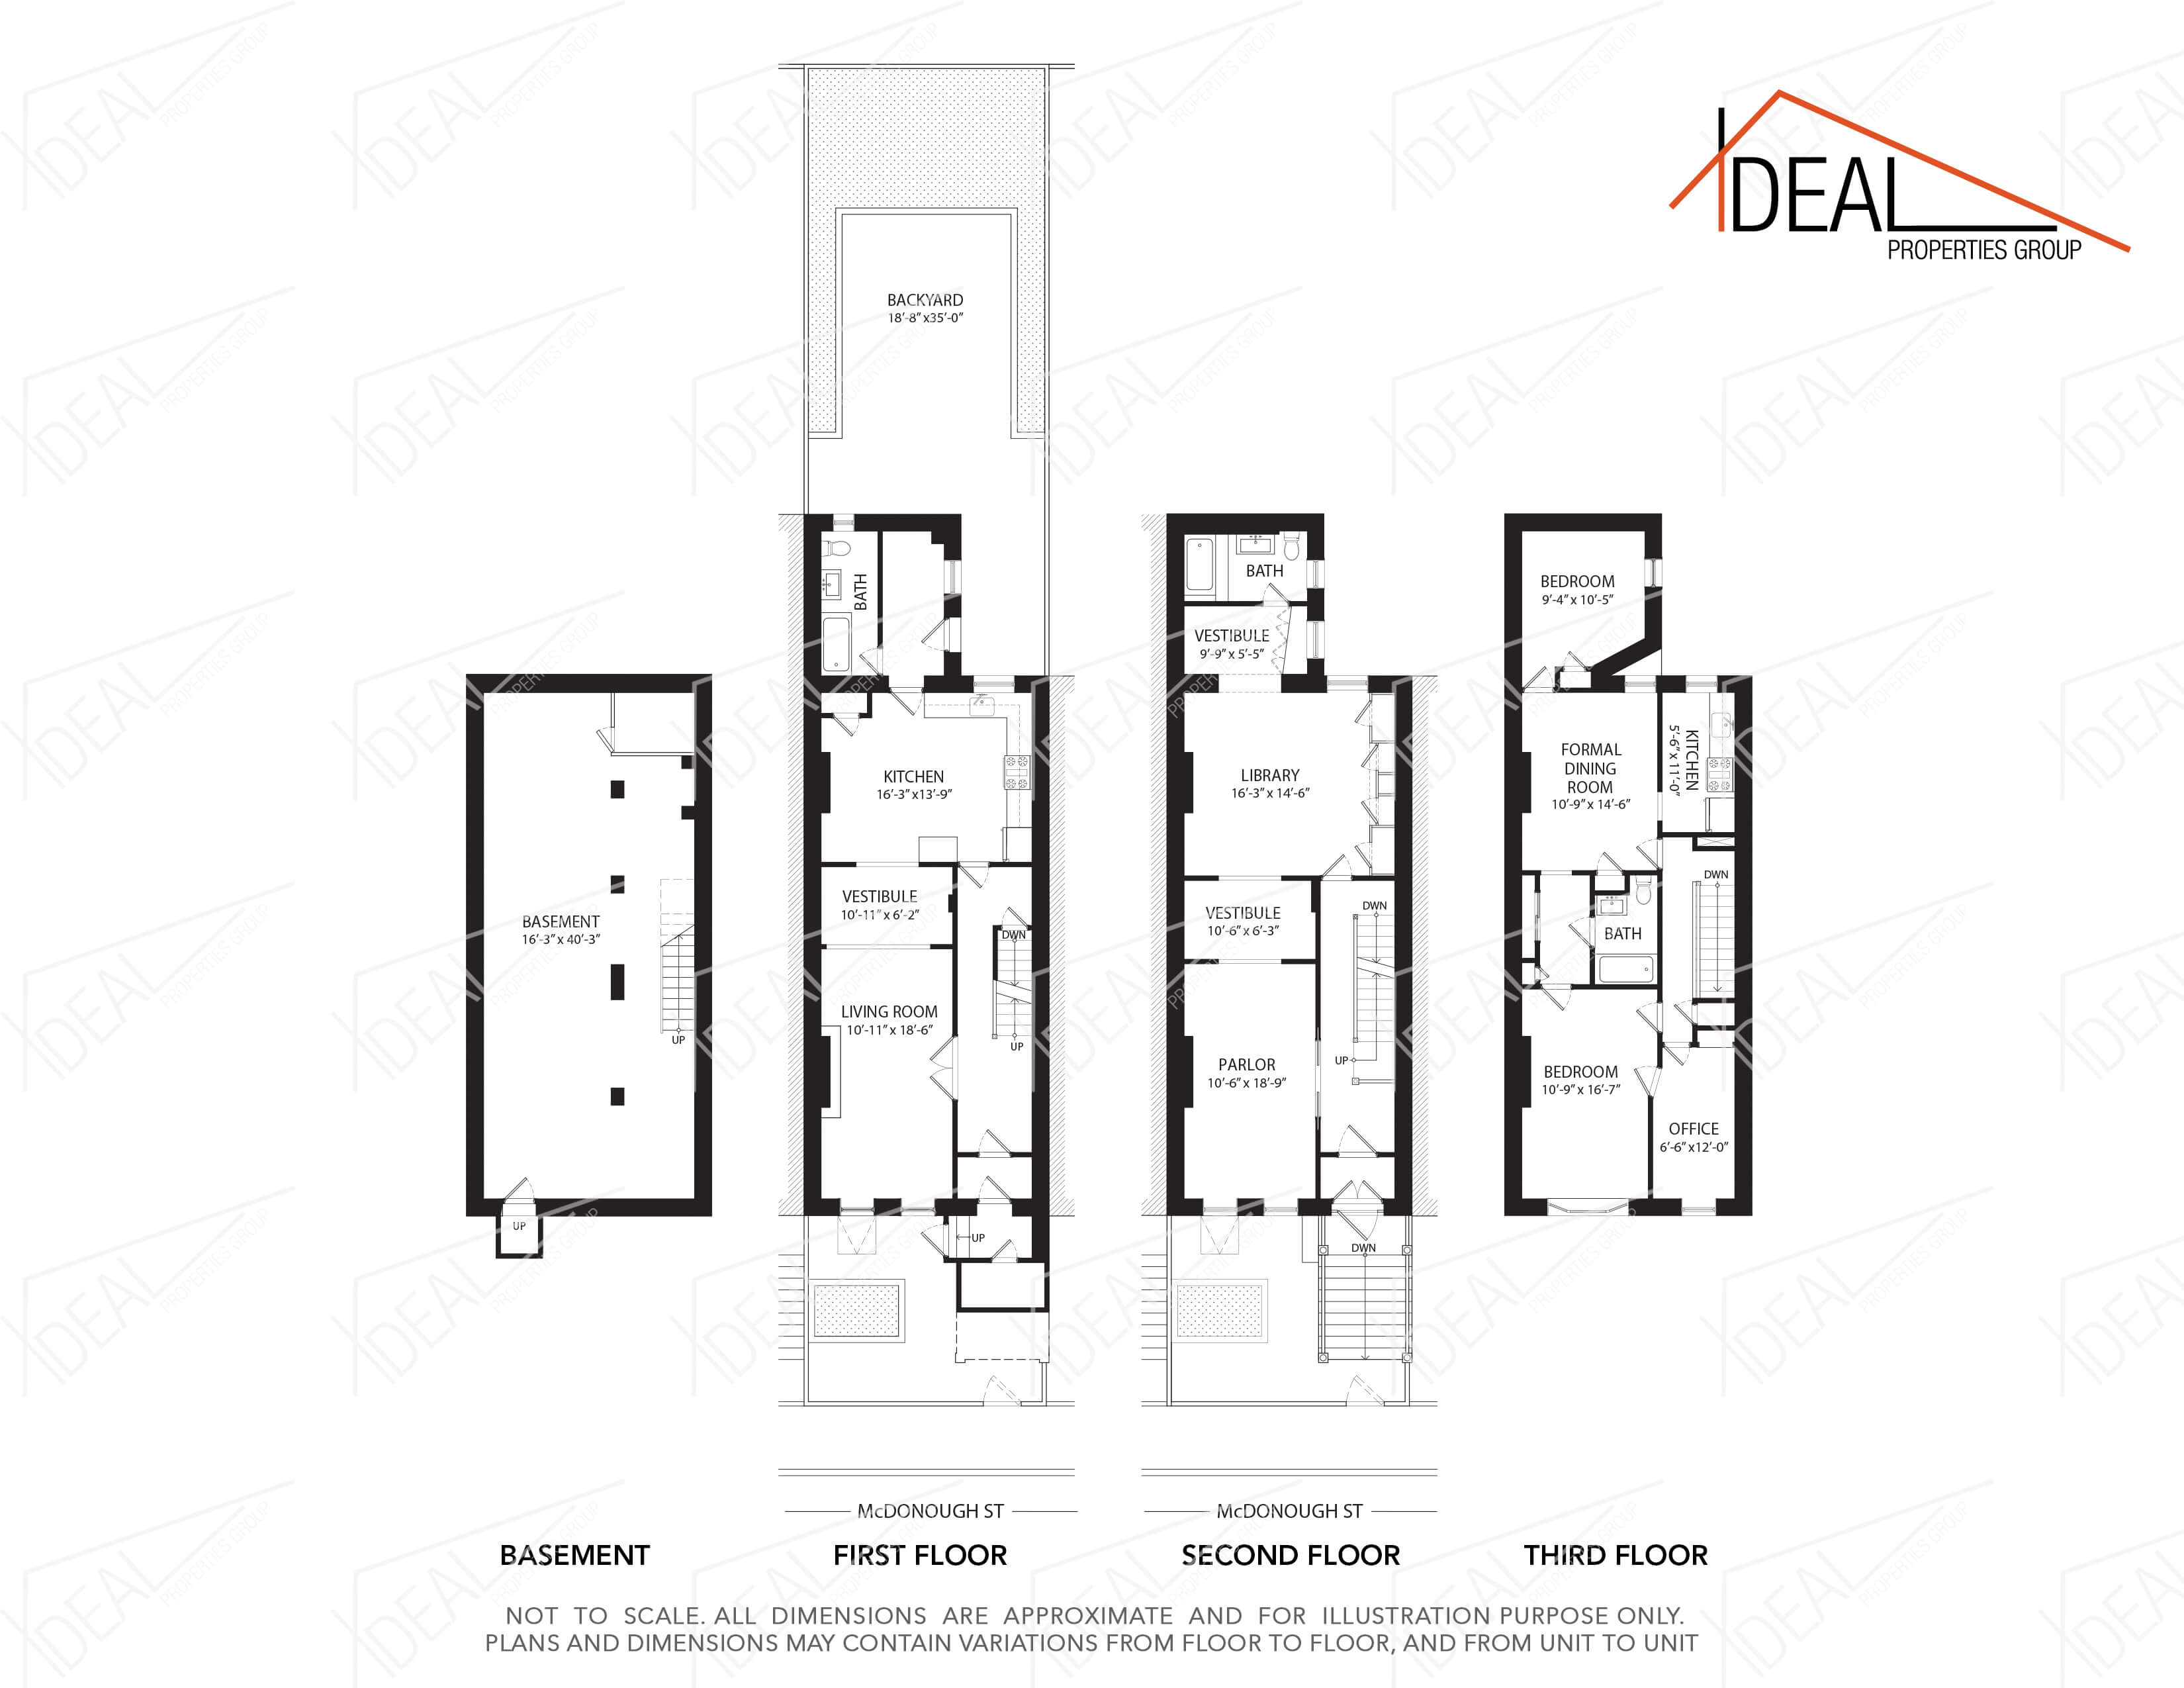 brooklyn homes for sale in bed stuy at 453 macdonough street brooklyn homes for sale bed stuy 453 macdonough street